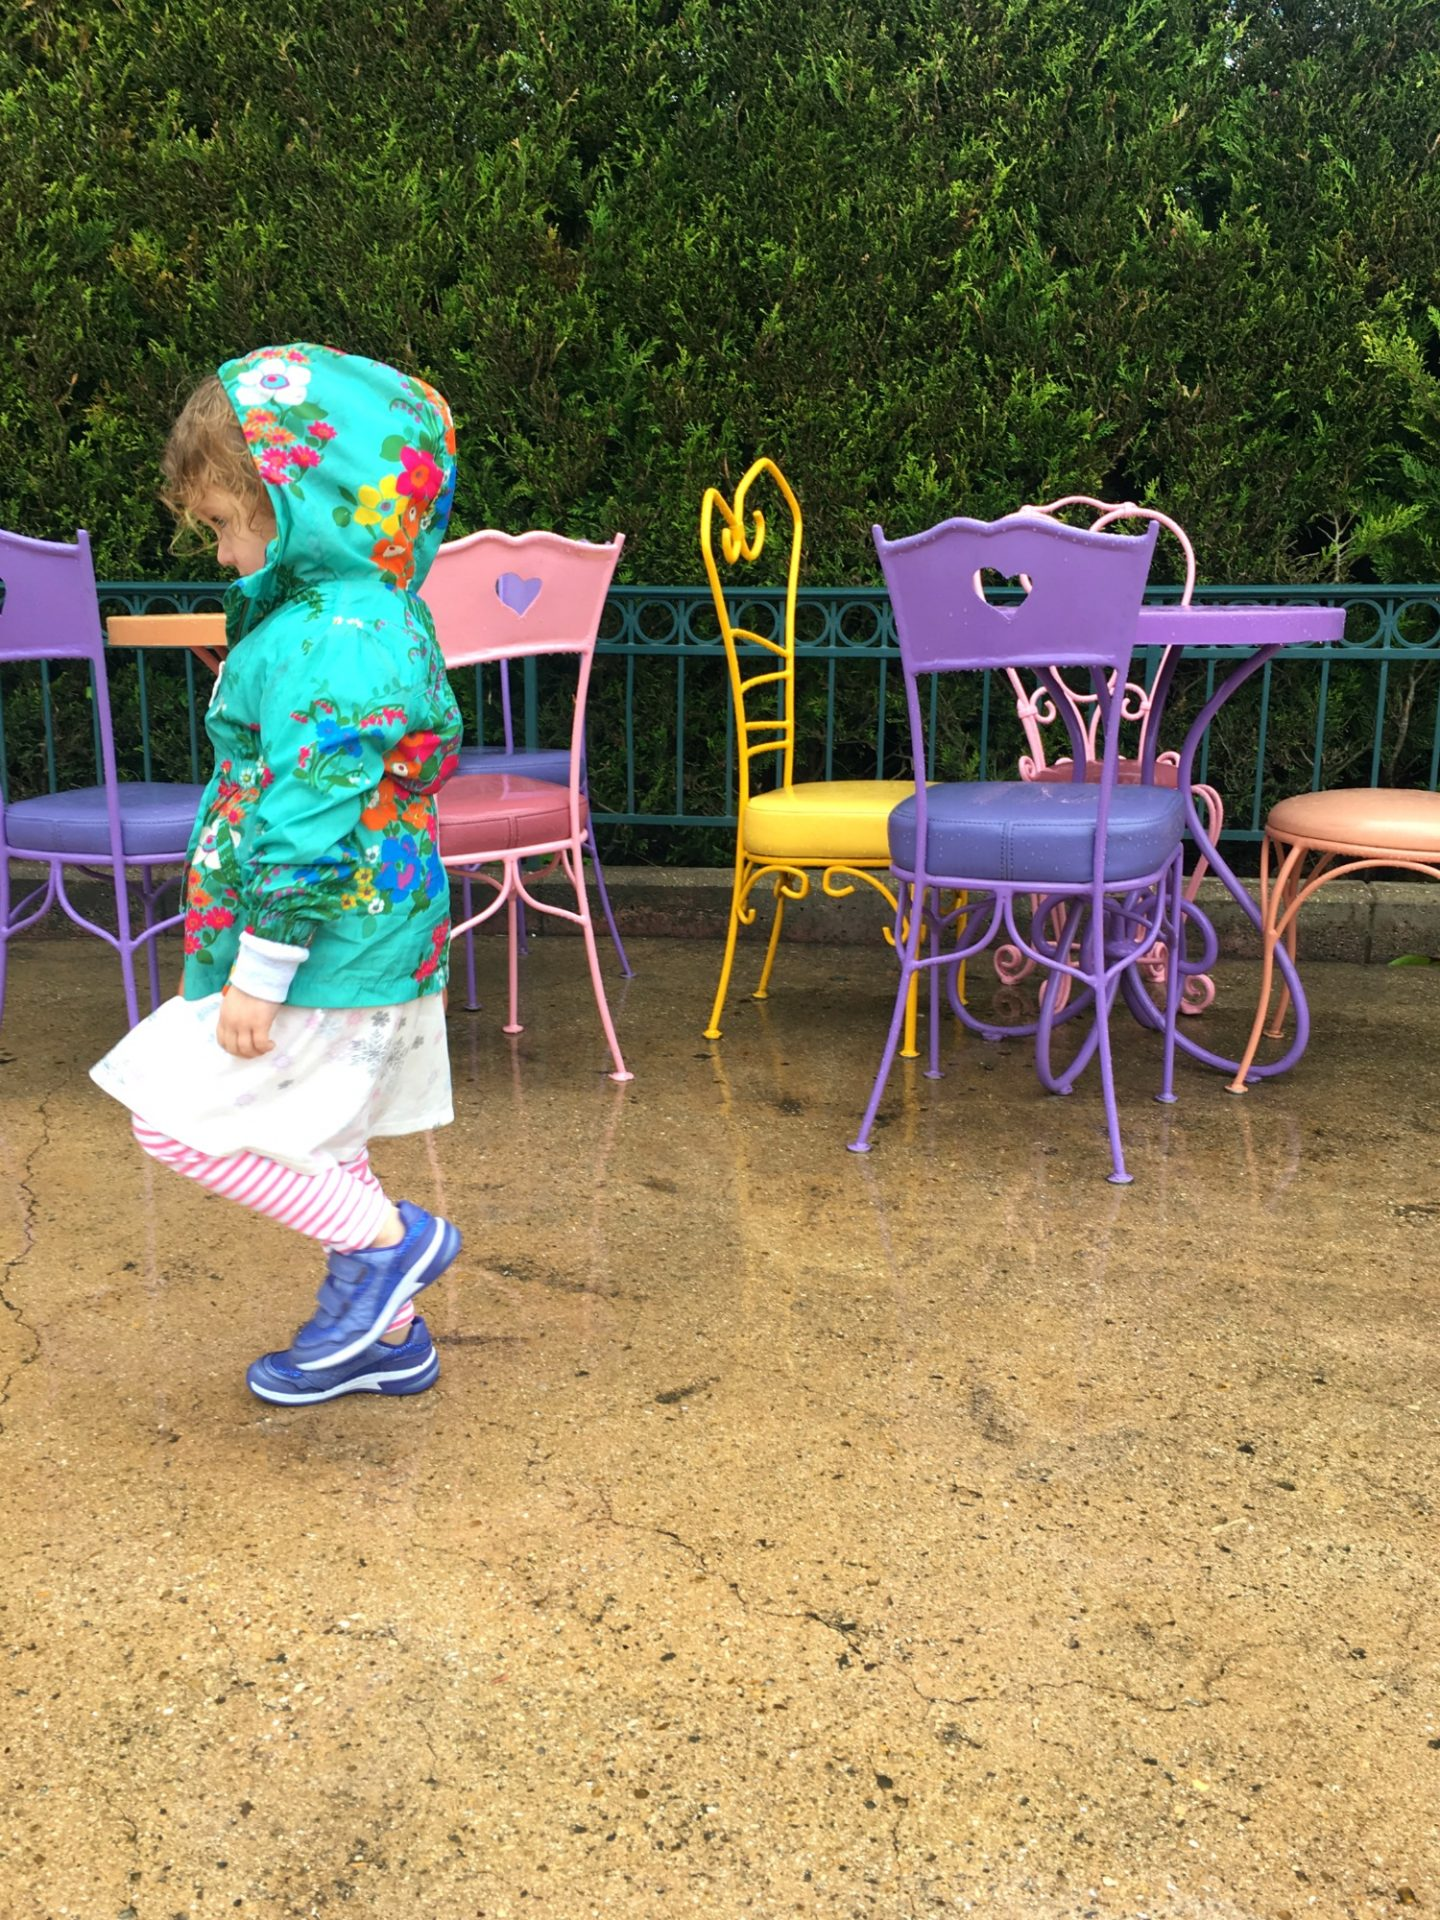 Rain at Disneyland Paris trip tips